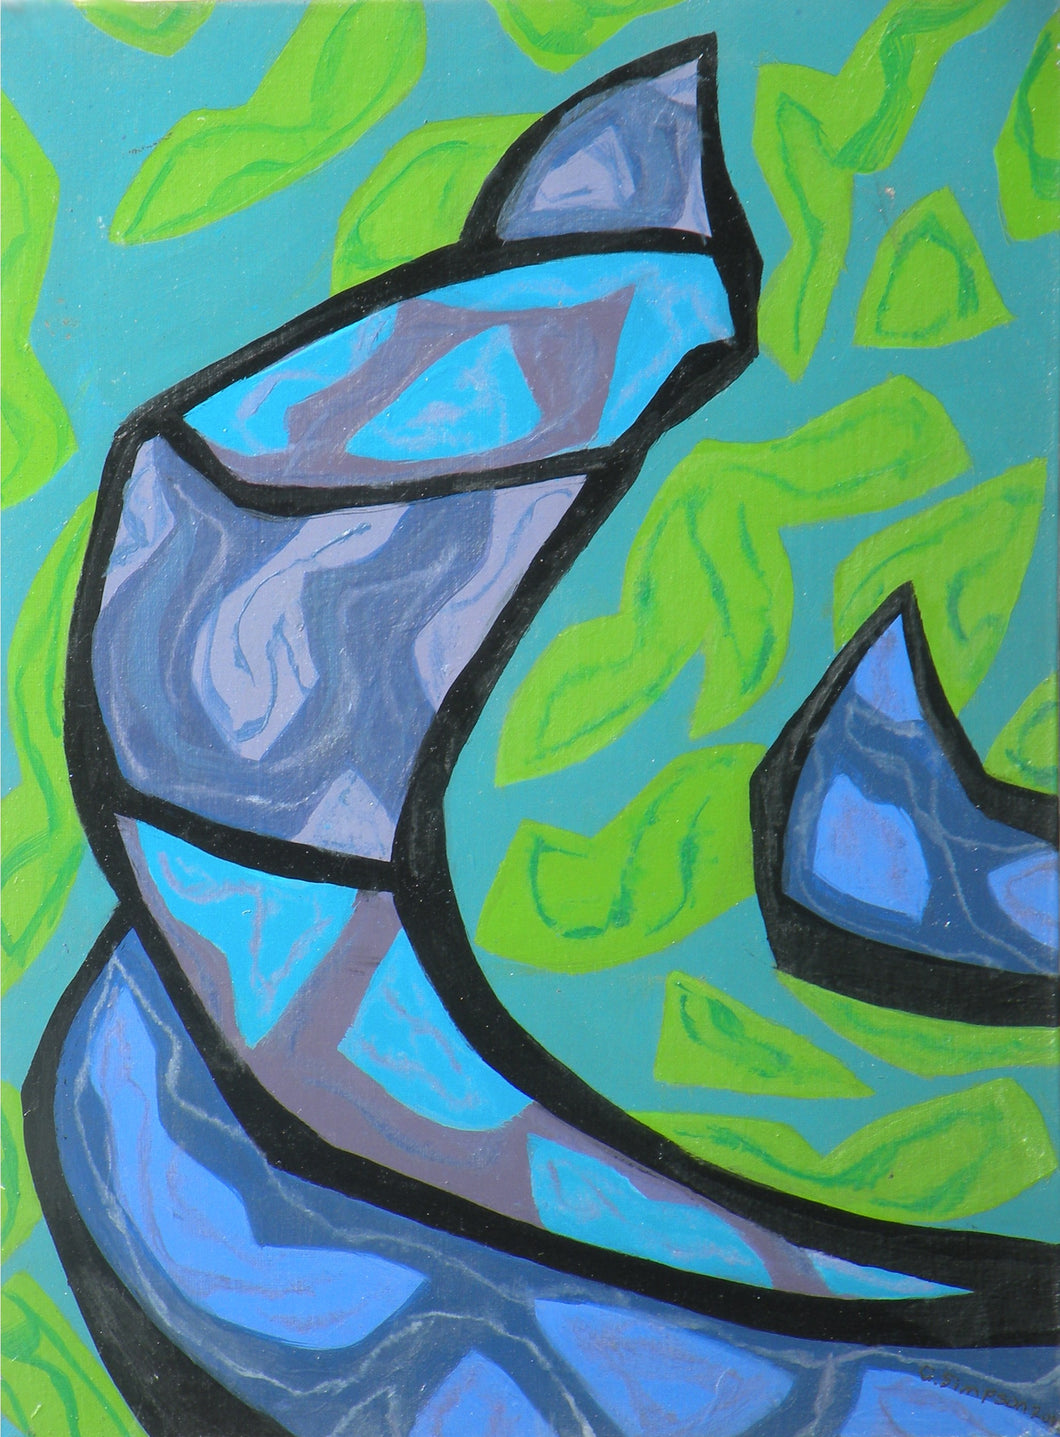 Beautiful turquoise and blue patterned swooping shape is an abstract depiction of the steering mechanism on a Venetian gondola and set against a bright green, water-like background by Canadian painter Gregg Simpson